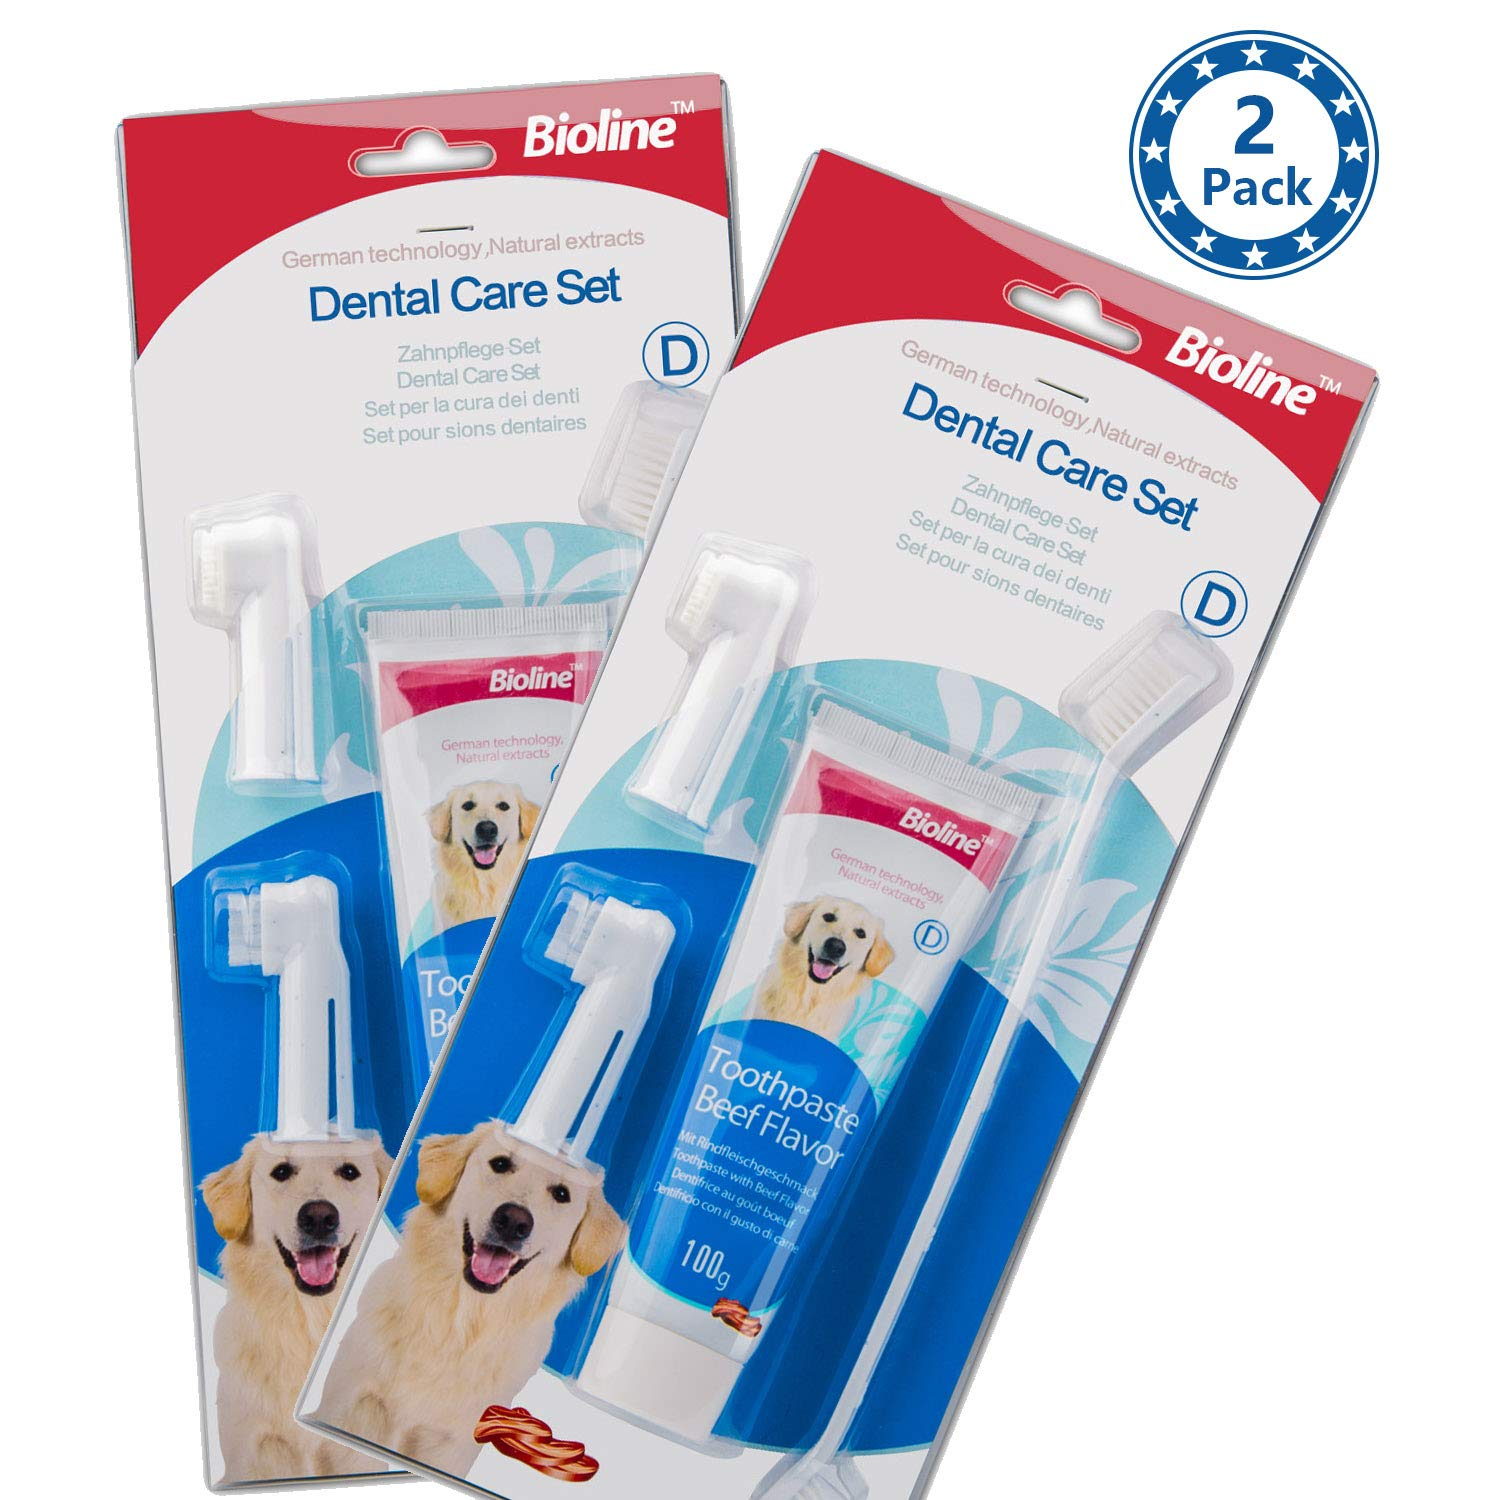 bioline 2 Pack of Dental Care Set Beef Flavor Toothpaste & Toothbrush Pet Oral Teeth Cleaning kit, 100g (3.5oz) by bioline